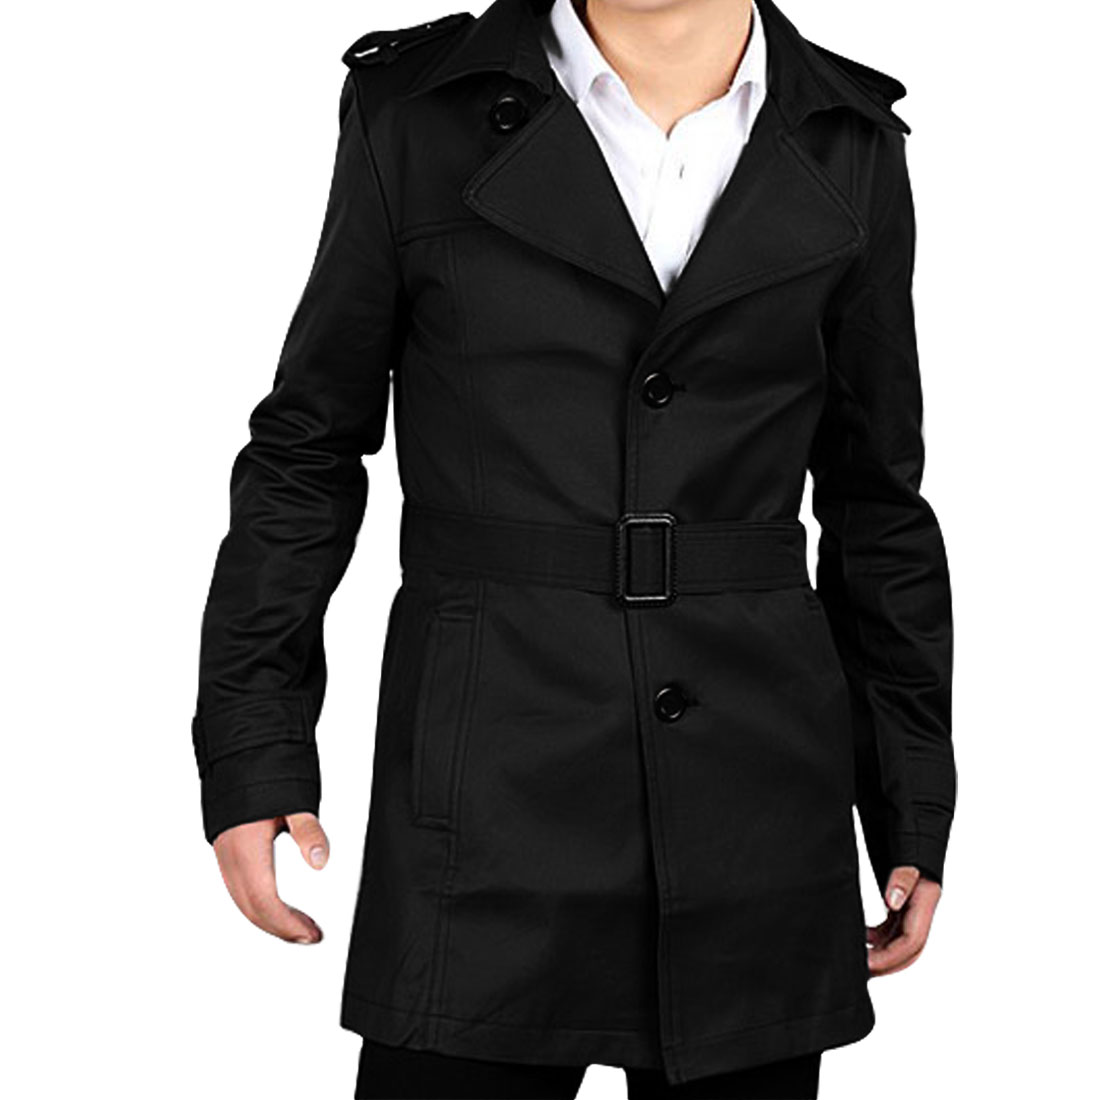 Man's Fashionable Notched Lapel Single Breasted Black Belted Windbreaker M